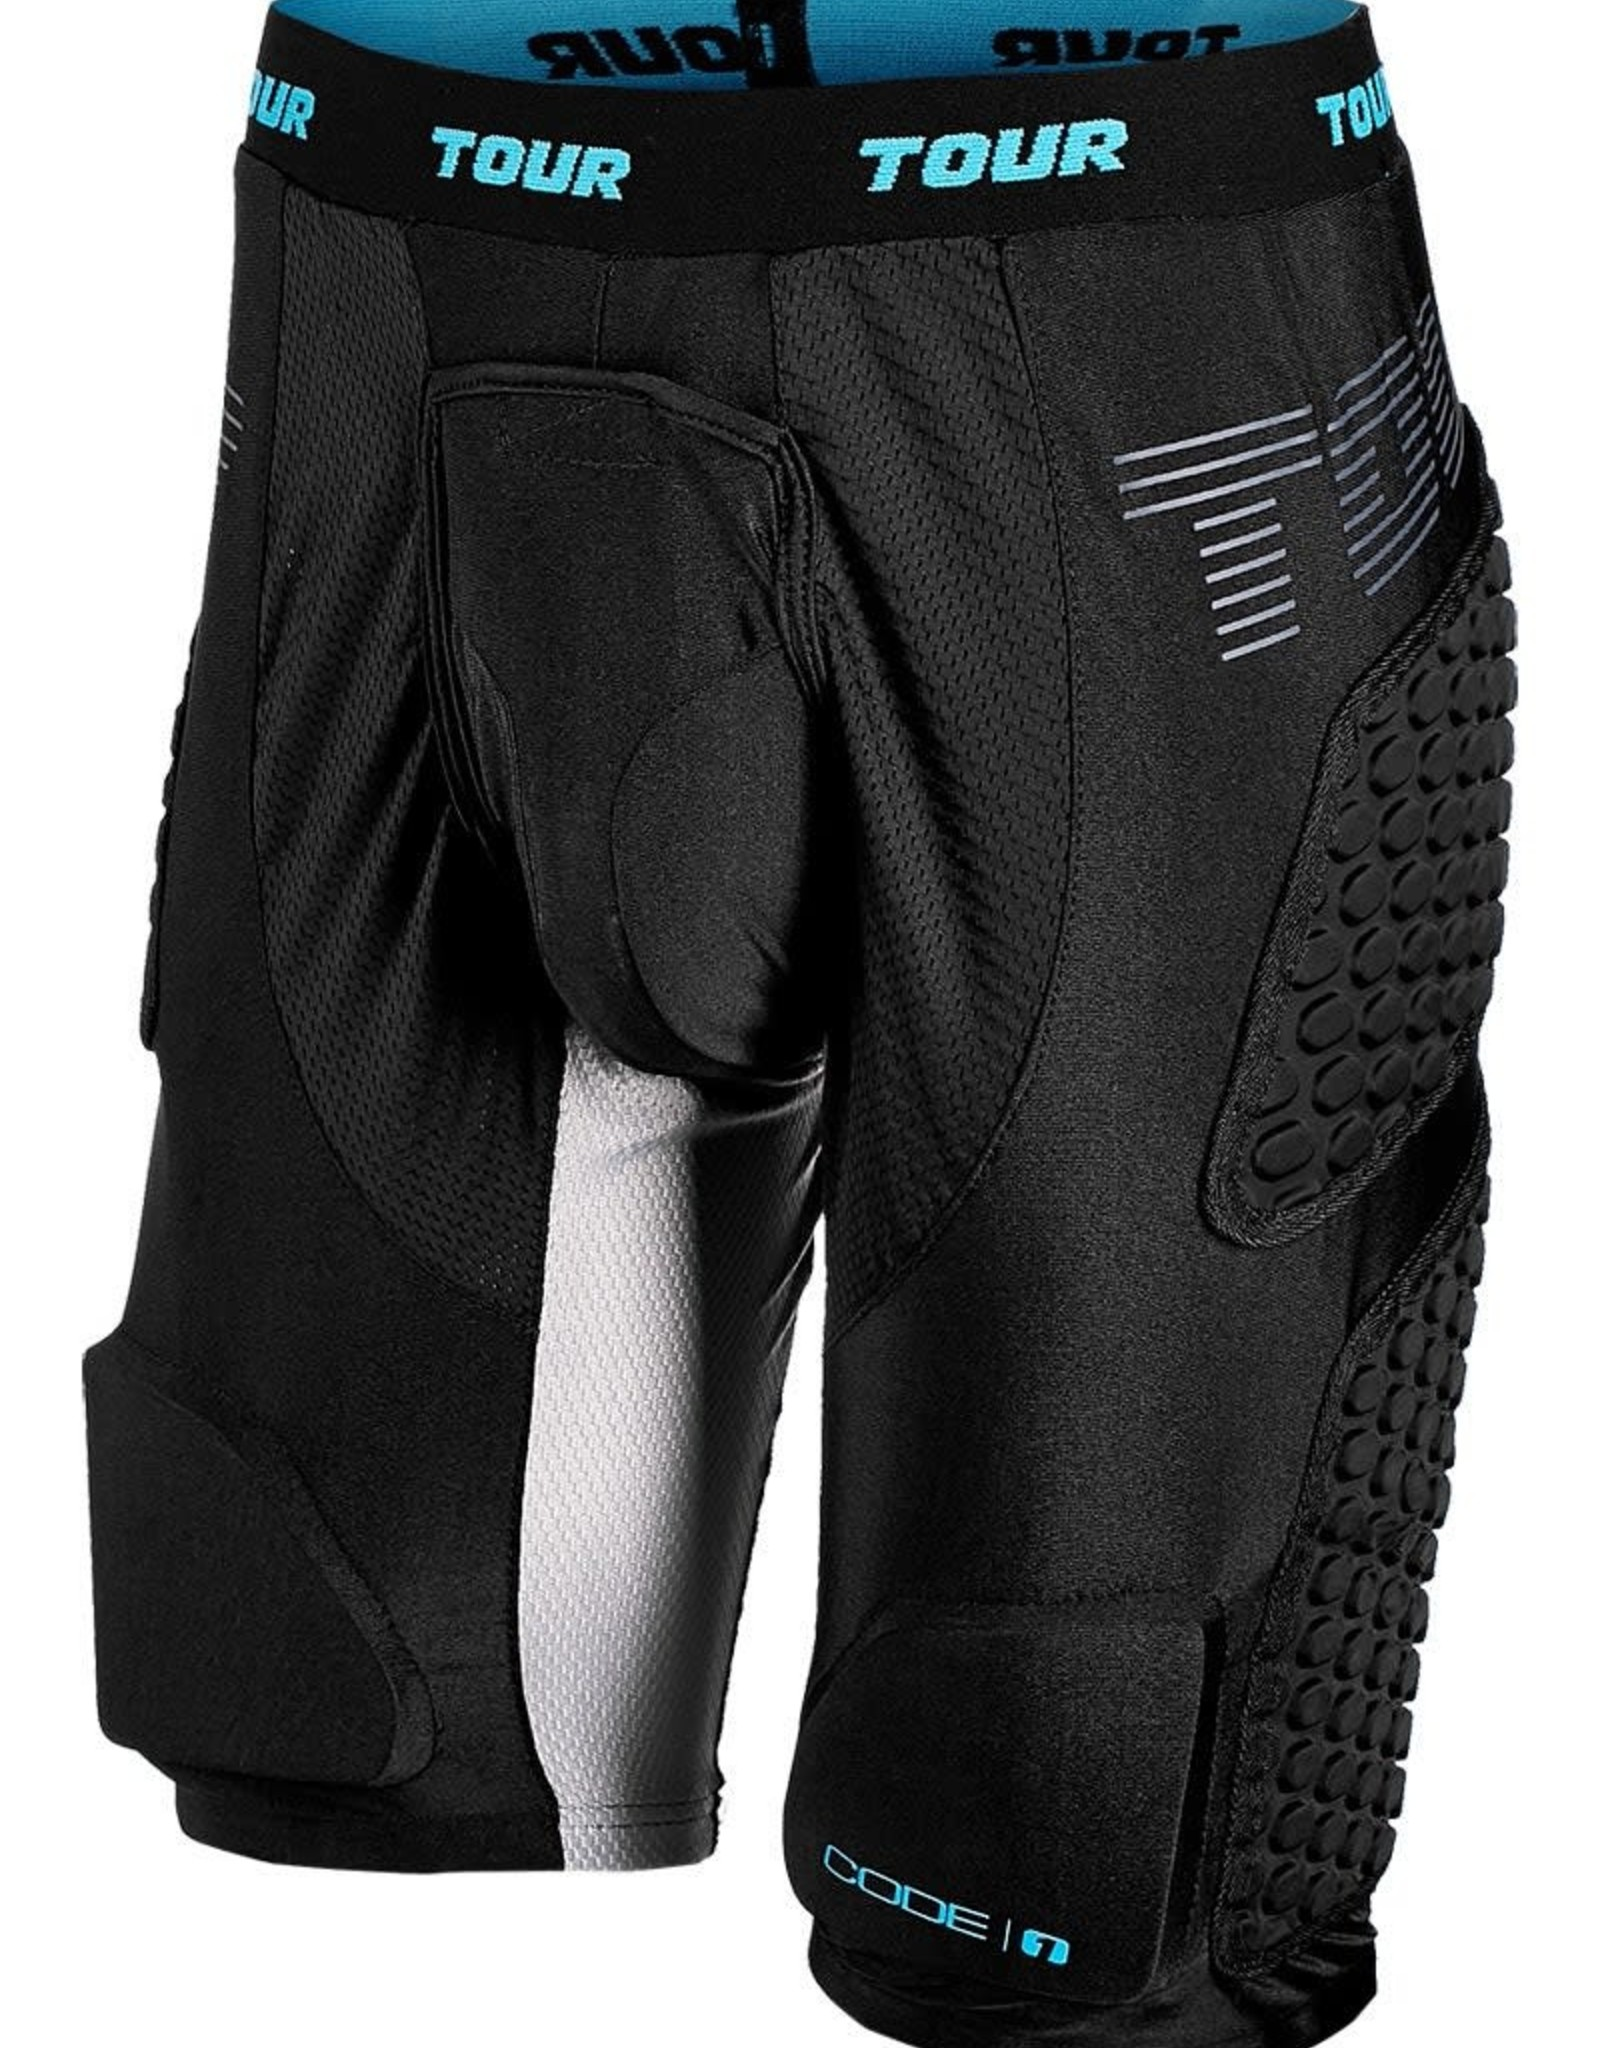 Tour Tour Code 1 Roller Hockey Girdle